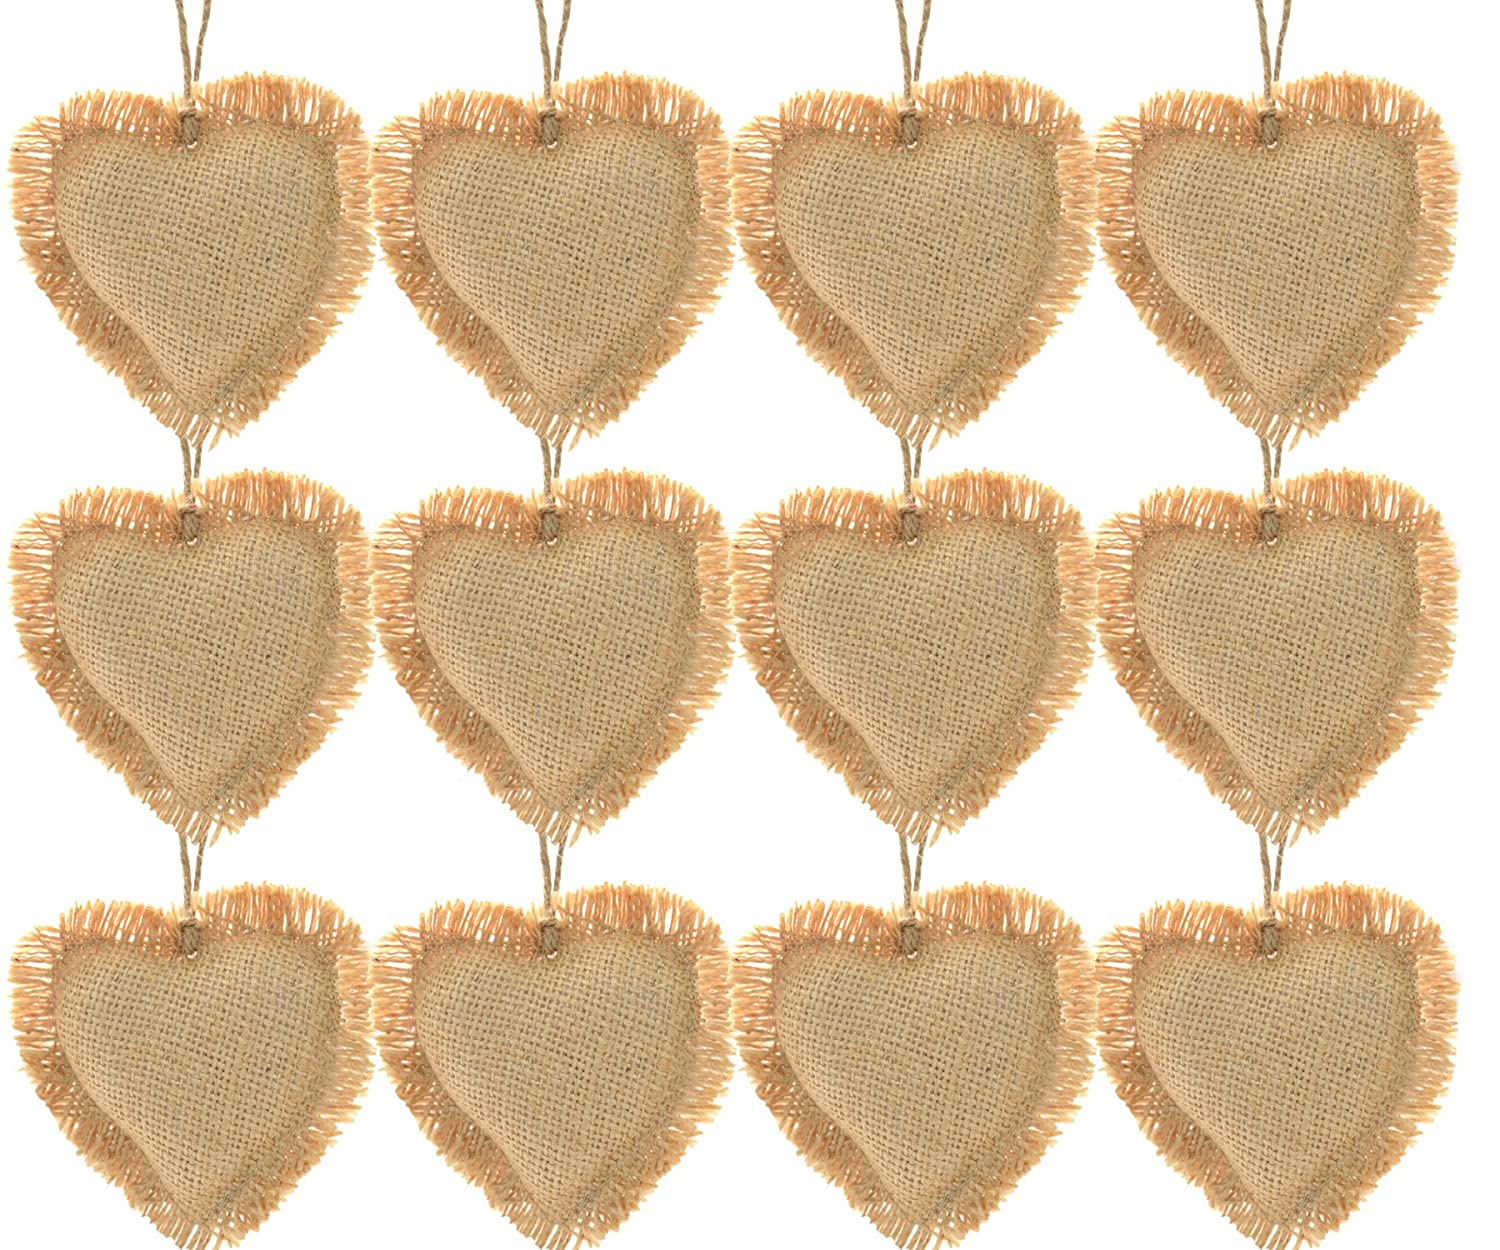 amazon com firefly craft rustic burlap heart ornaments package of 12